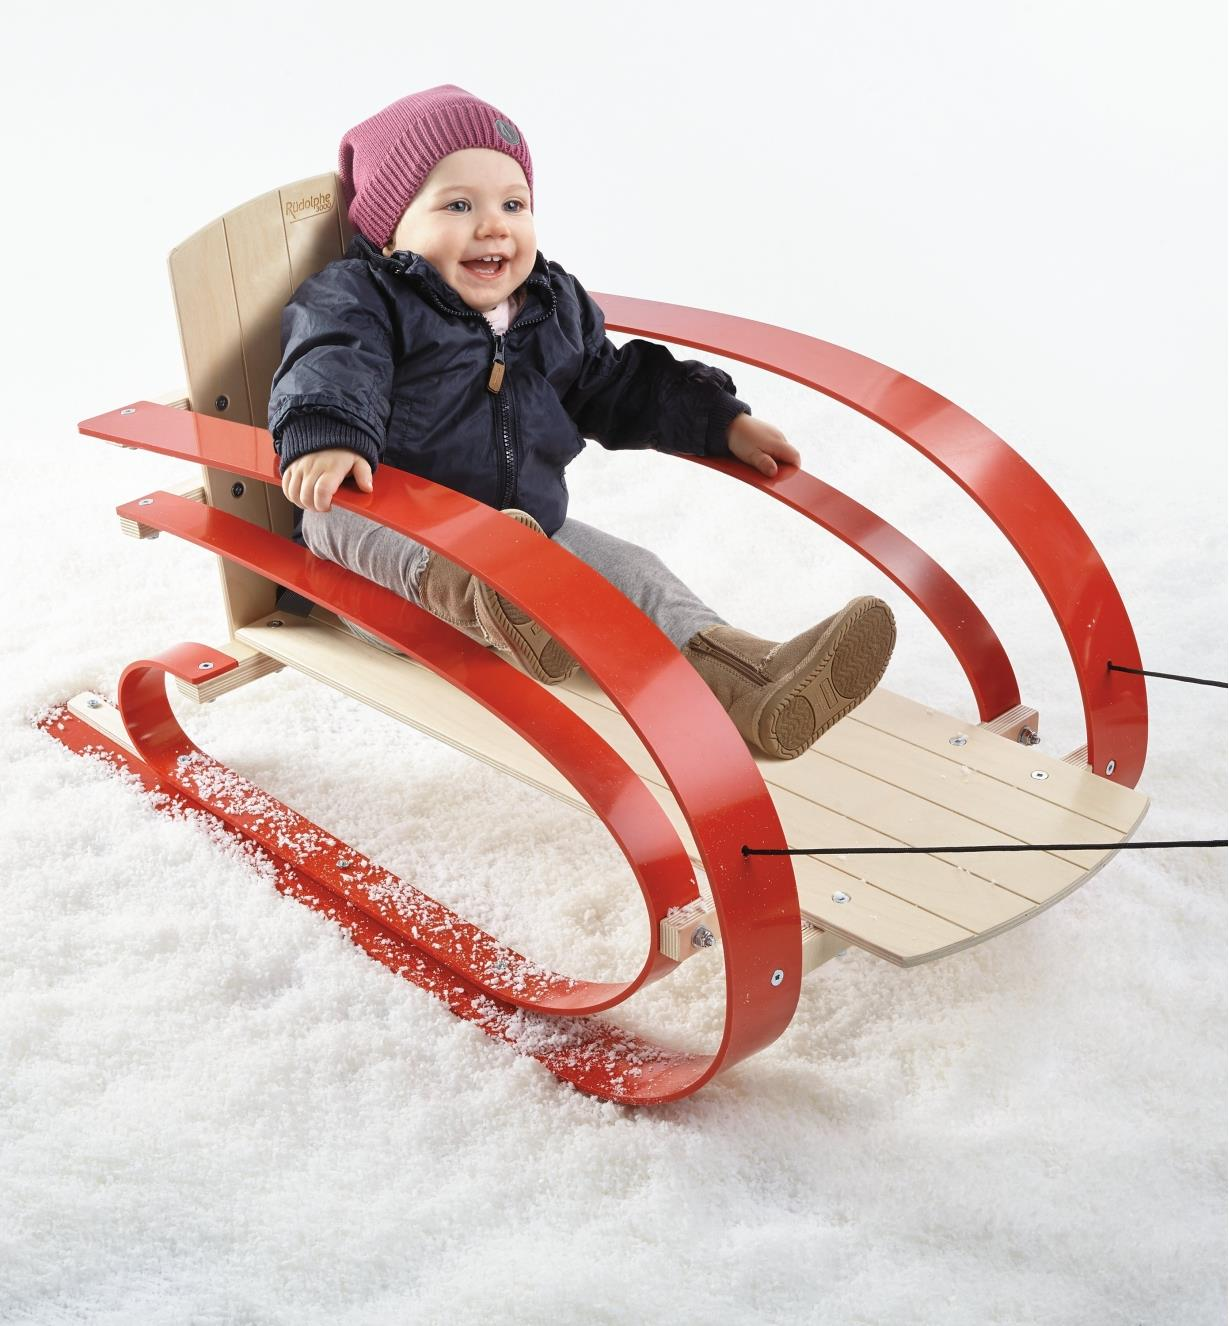 Suspension Sled holding a toddler is pulled over snow by the tow rope